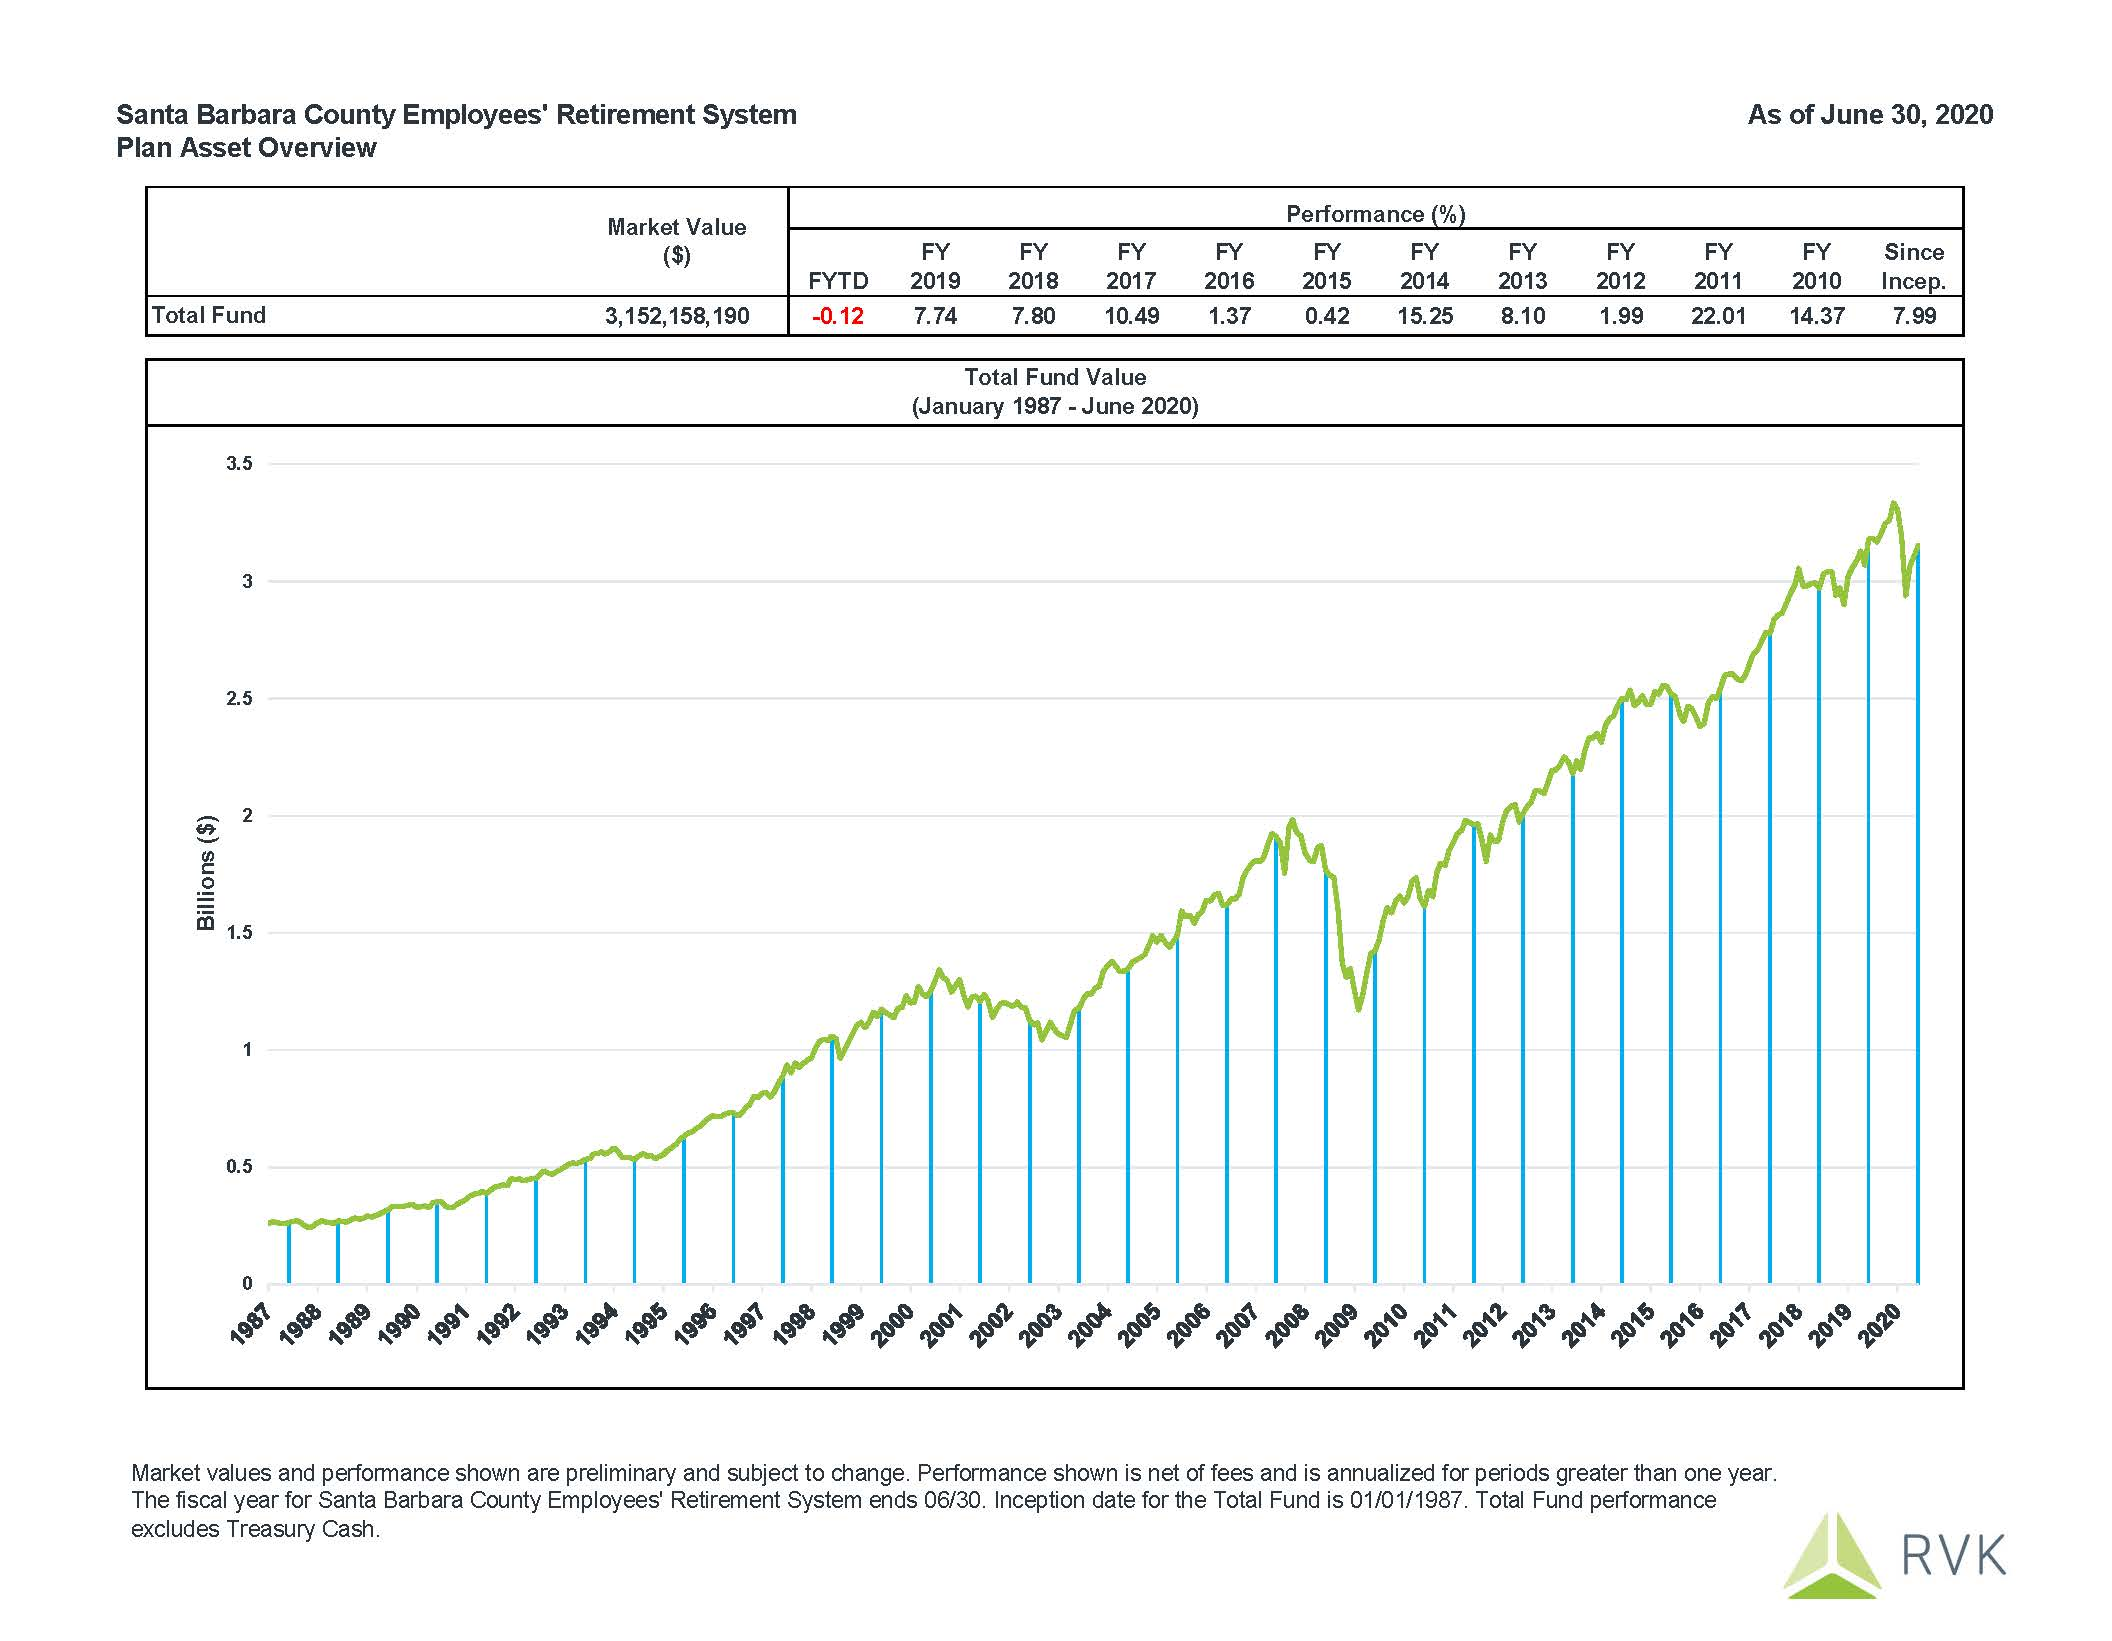 June 2020 Fund Performance: Fiscal Year to Date performance is -0.12%.